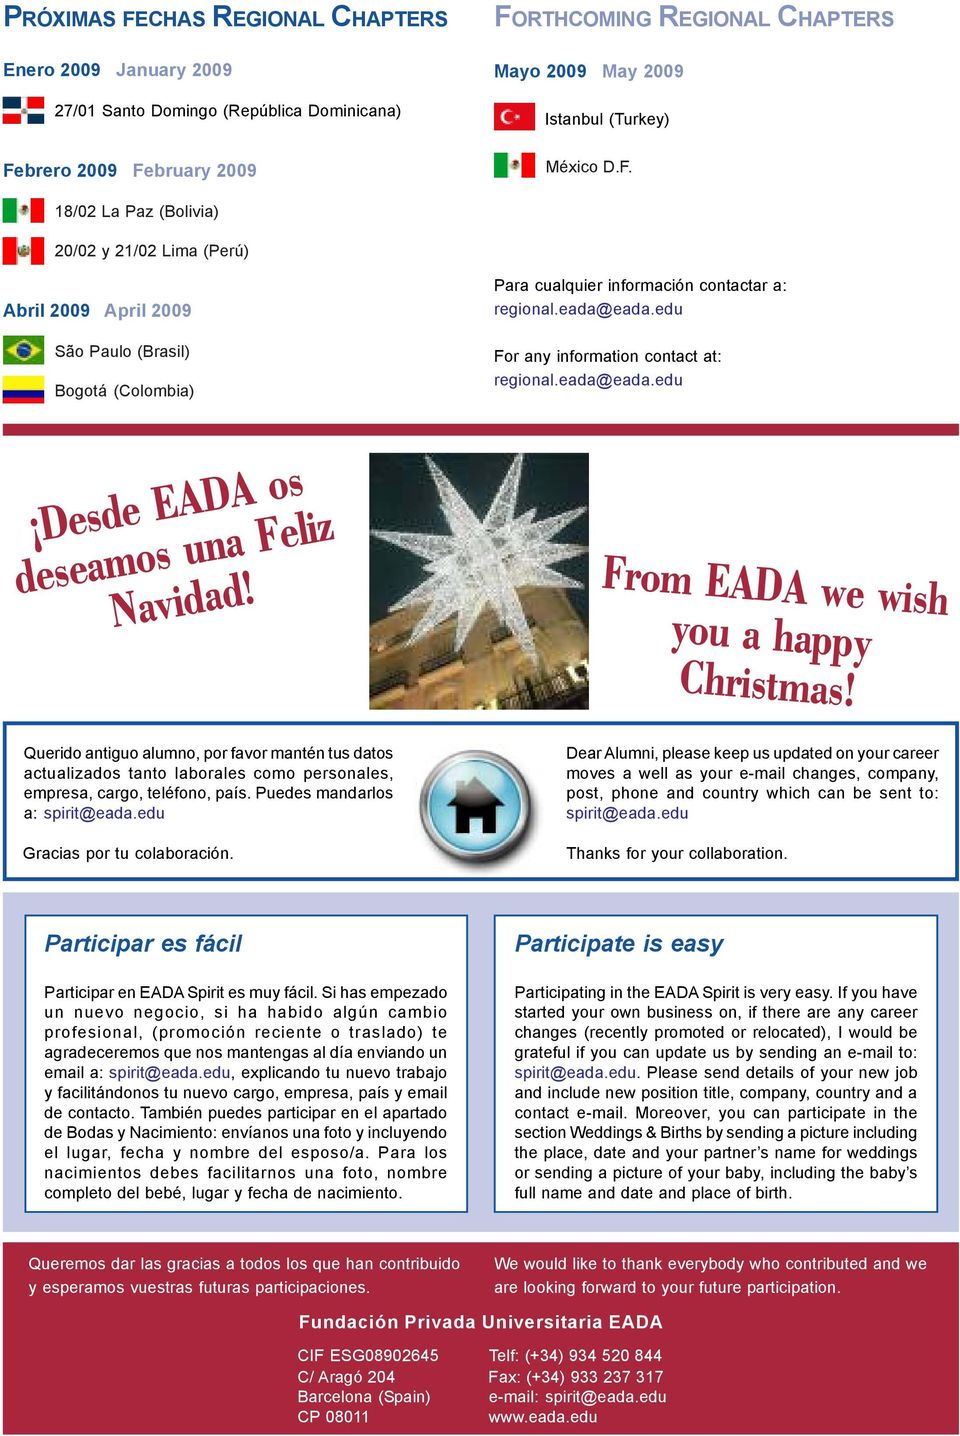 edu For any information contact at: regional.eada@eada.edu Desde EADA os deseamos una Feliz Navidad! From EADA we wish you a happy Christmas!